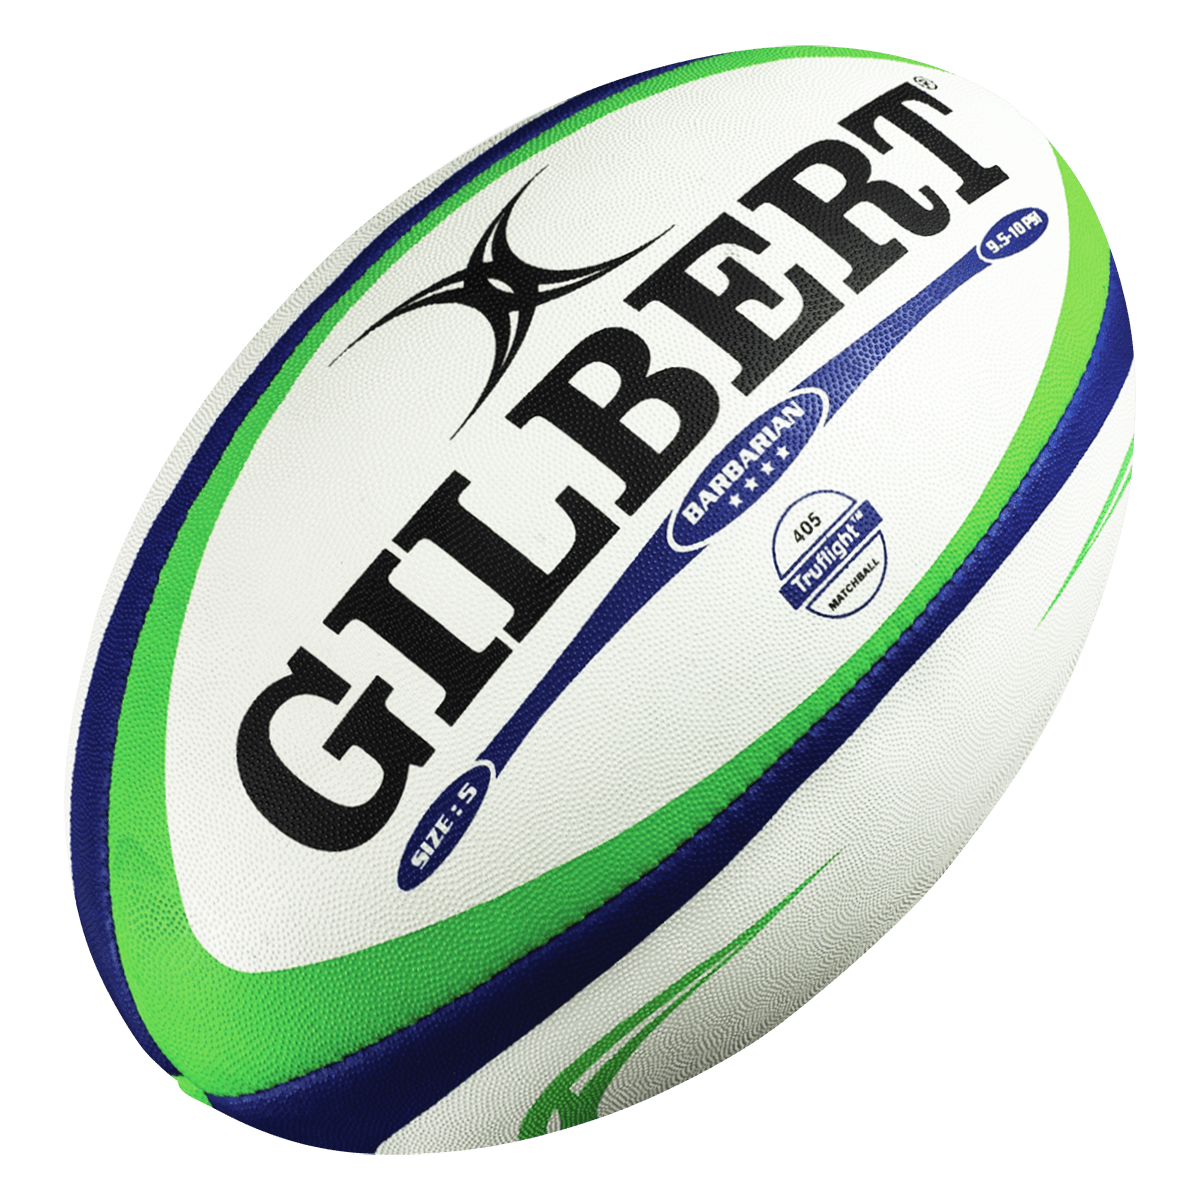 Gilbert Barbarian Match Rugby Ball White With Blue & Green and Black Gilbert